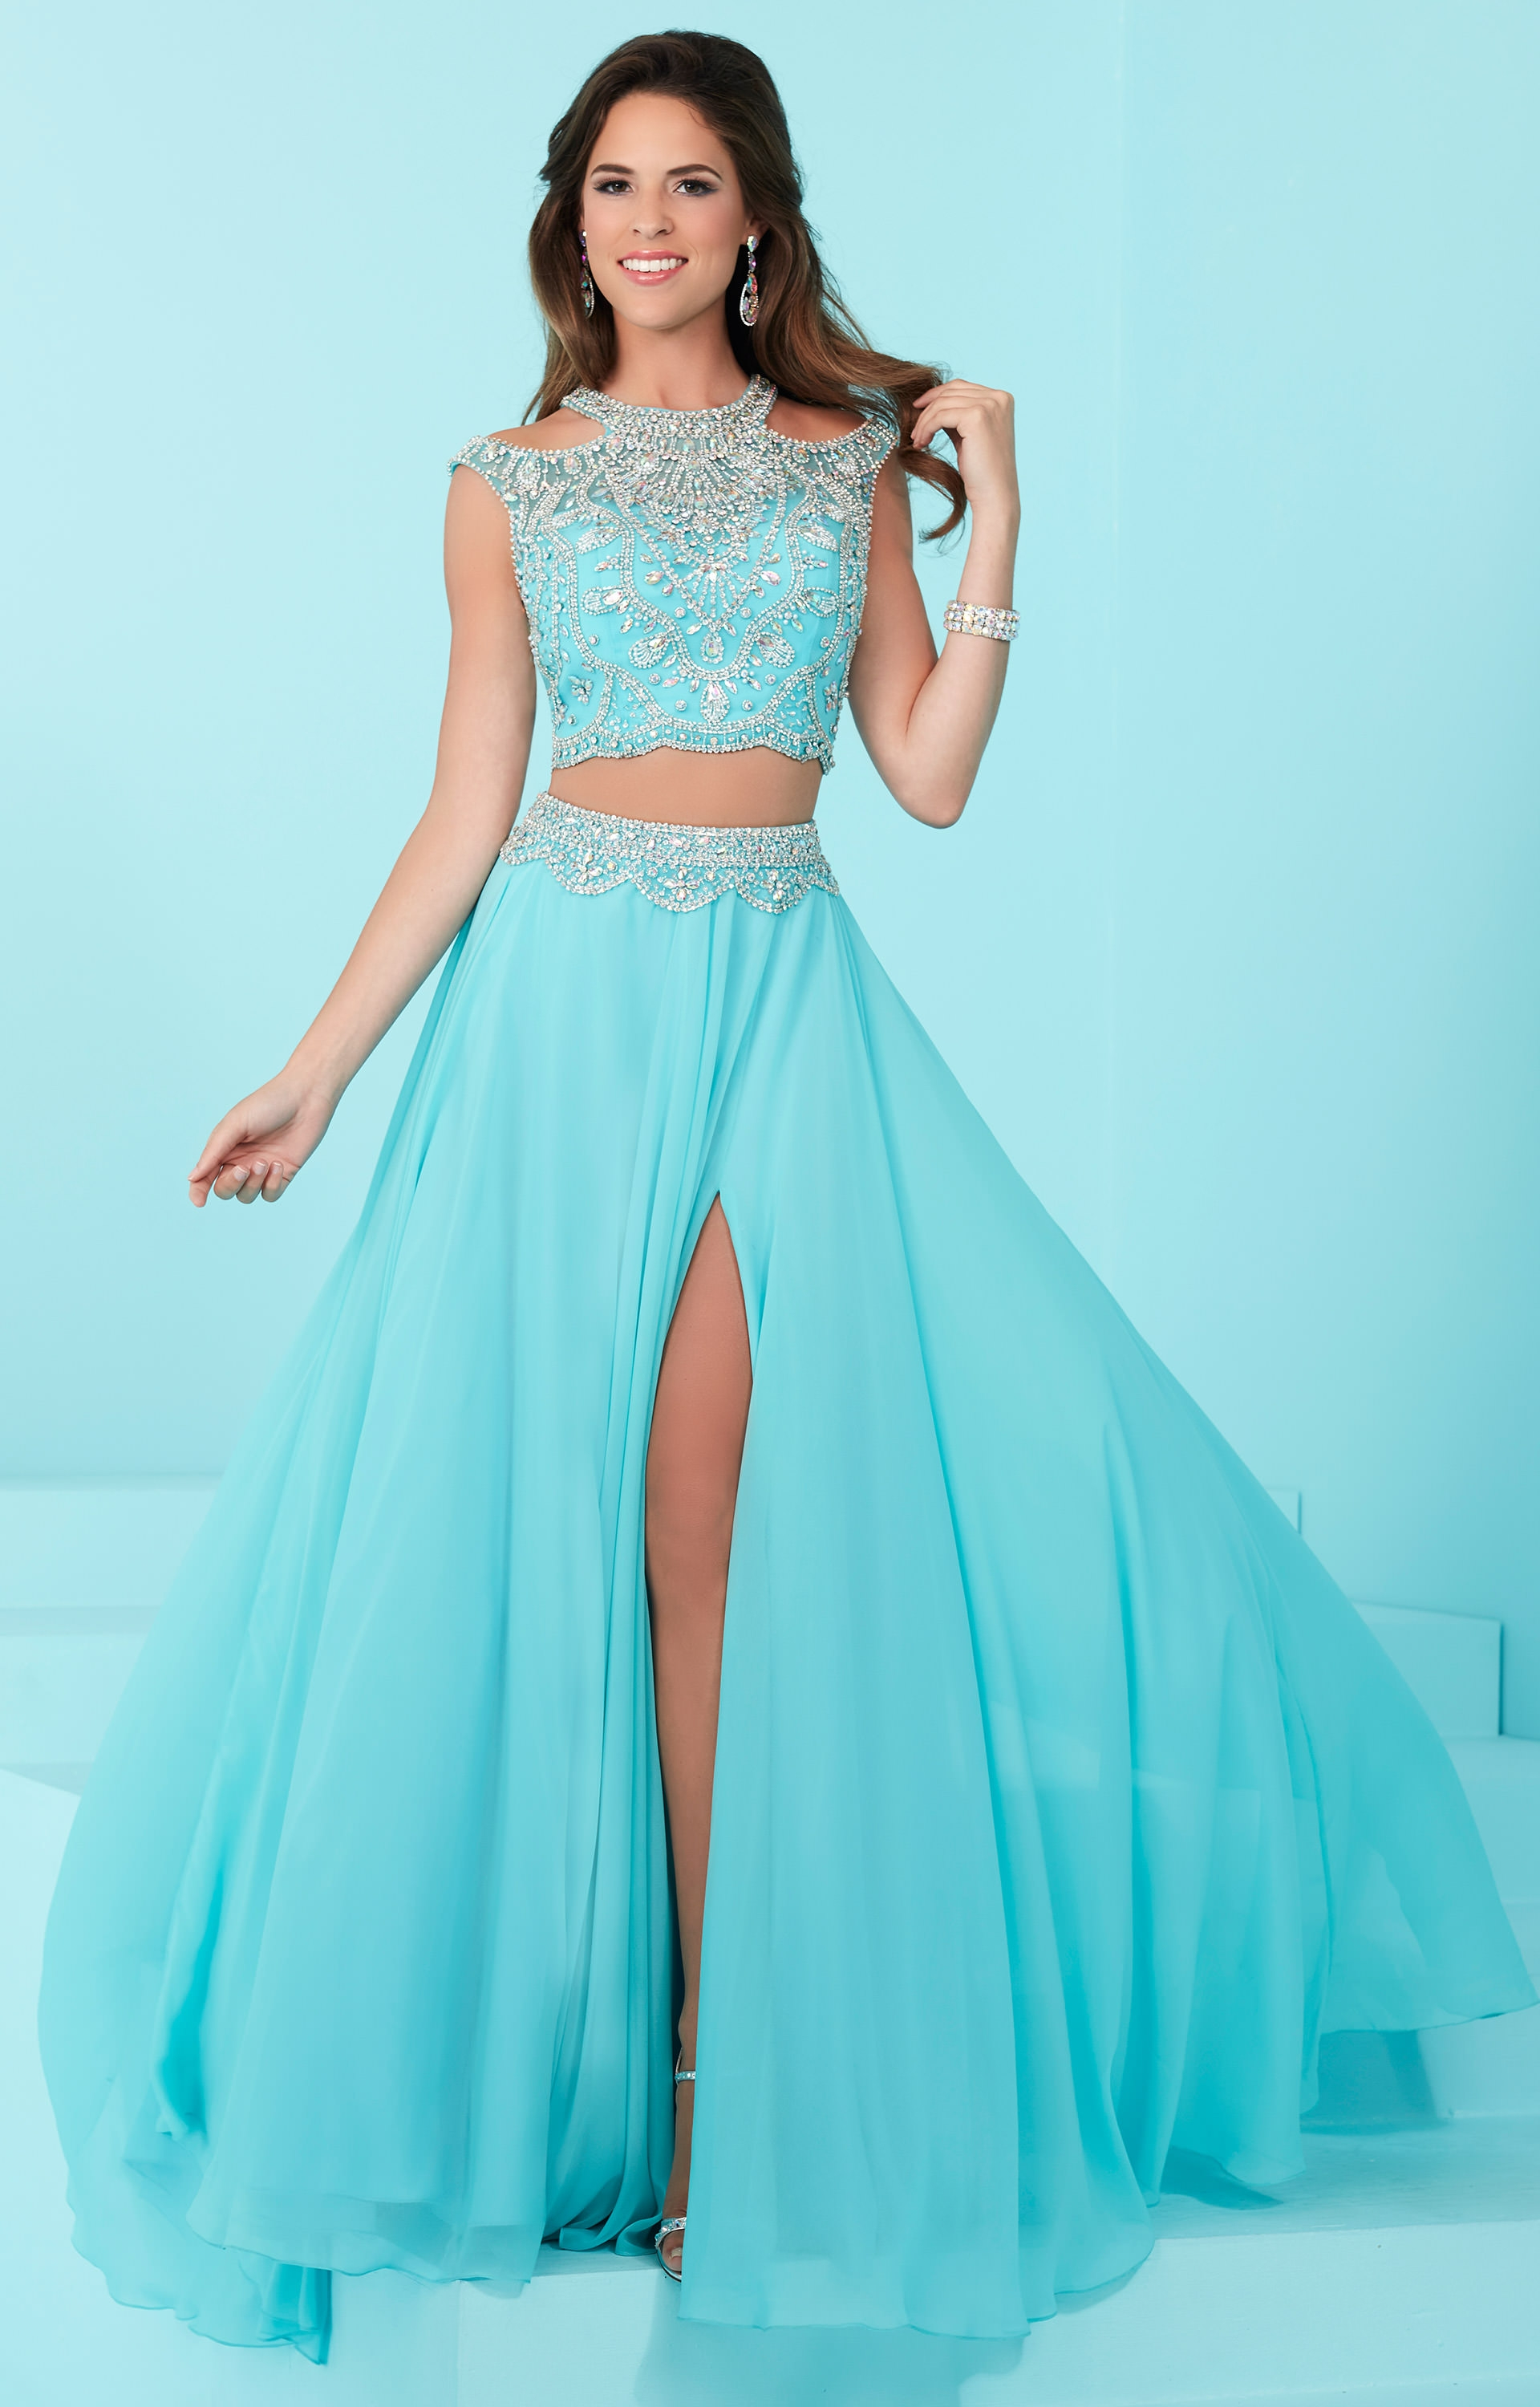 Tiffany Designs 16202 - 2 Piece Dress with High Slit Prom Dress